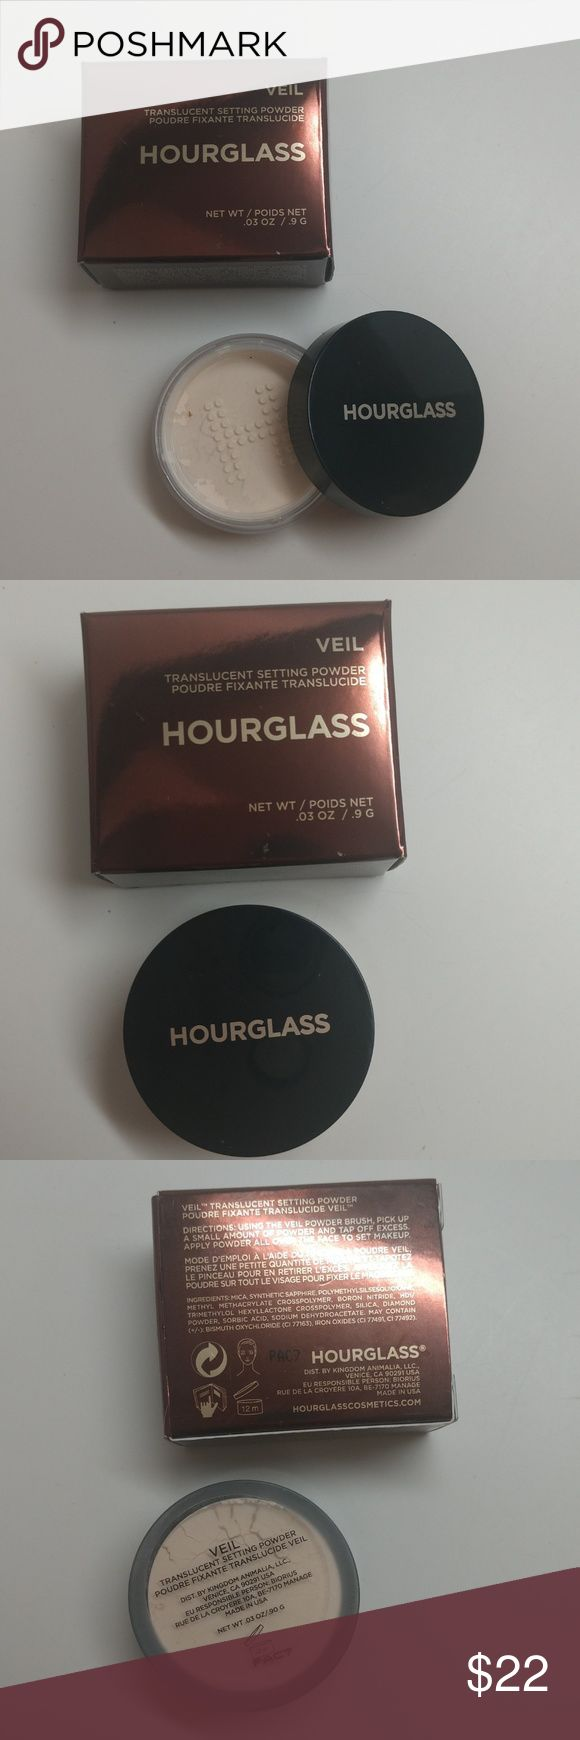 Hourglass Setting Powder Setting Powder Travel Size Products Hourglass Makeup